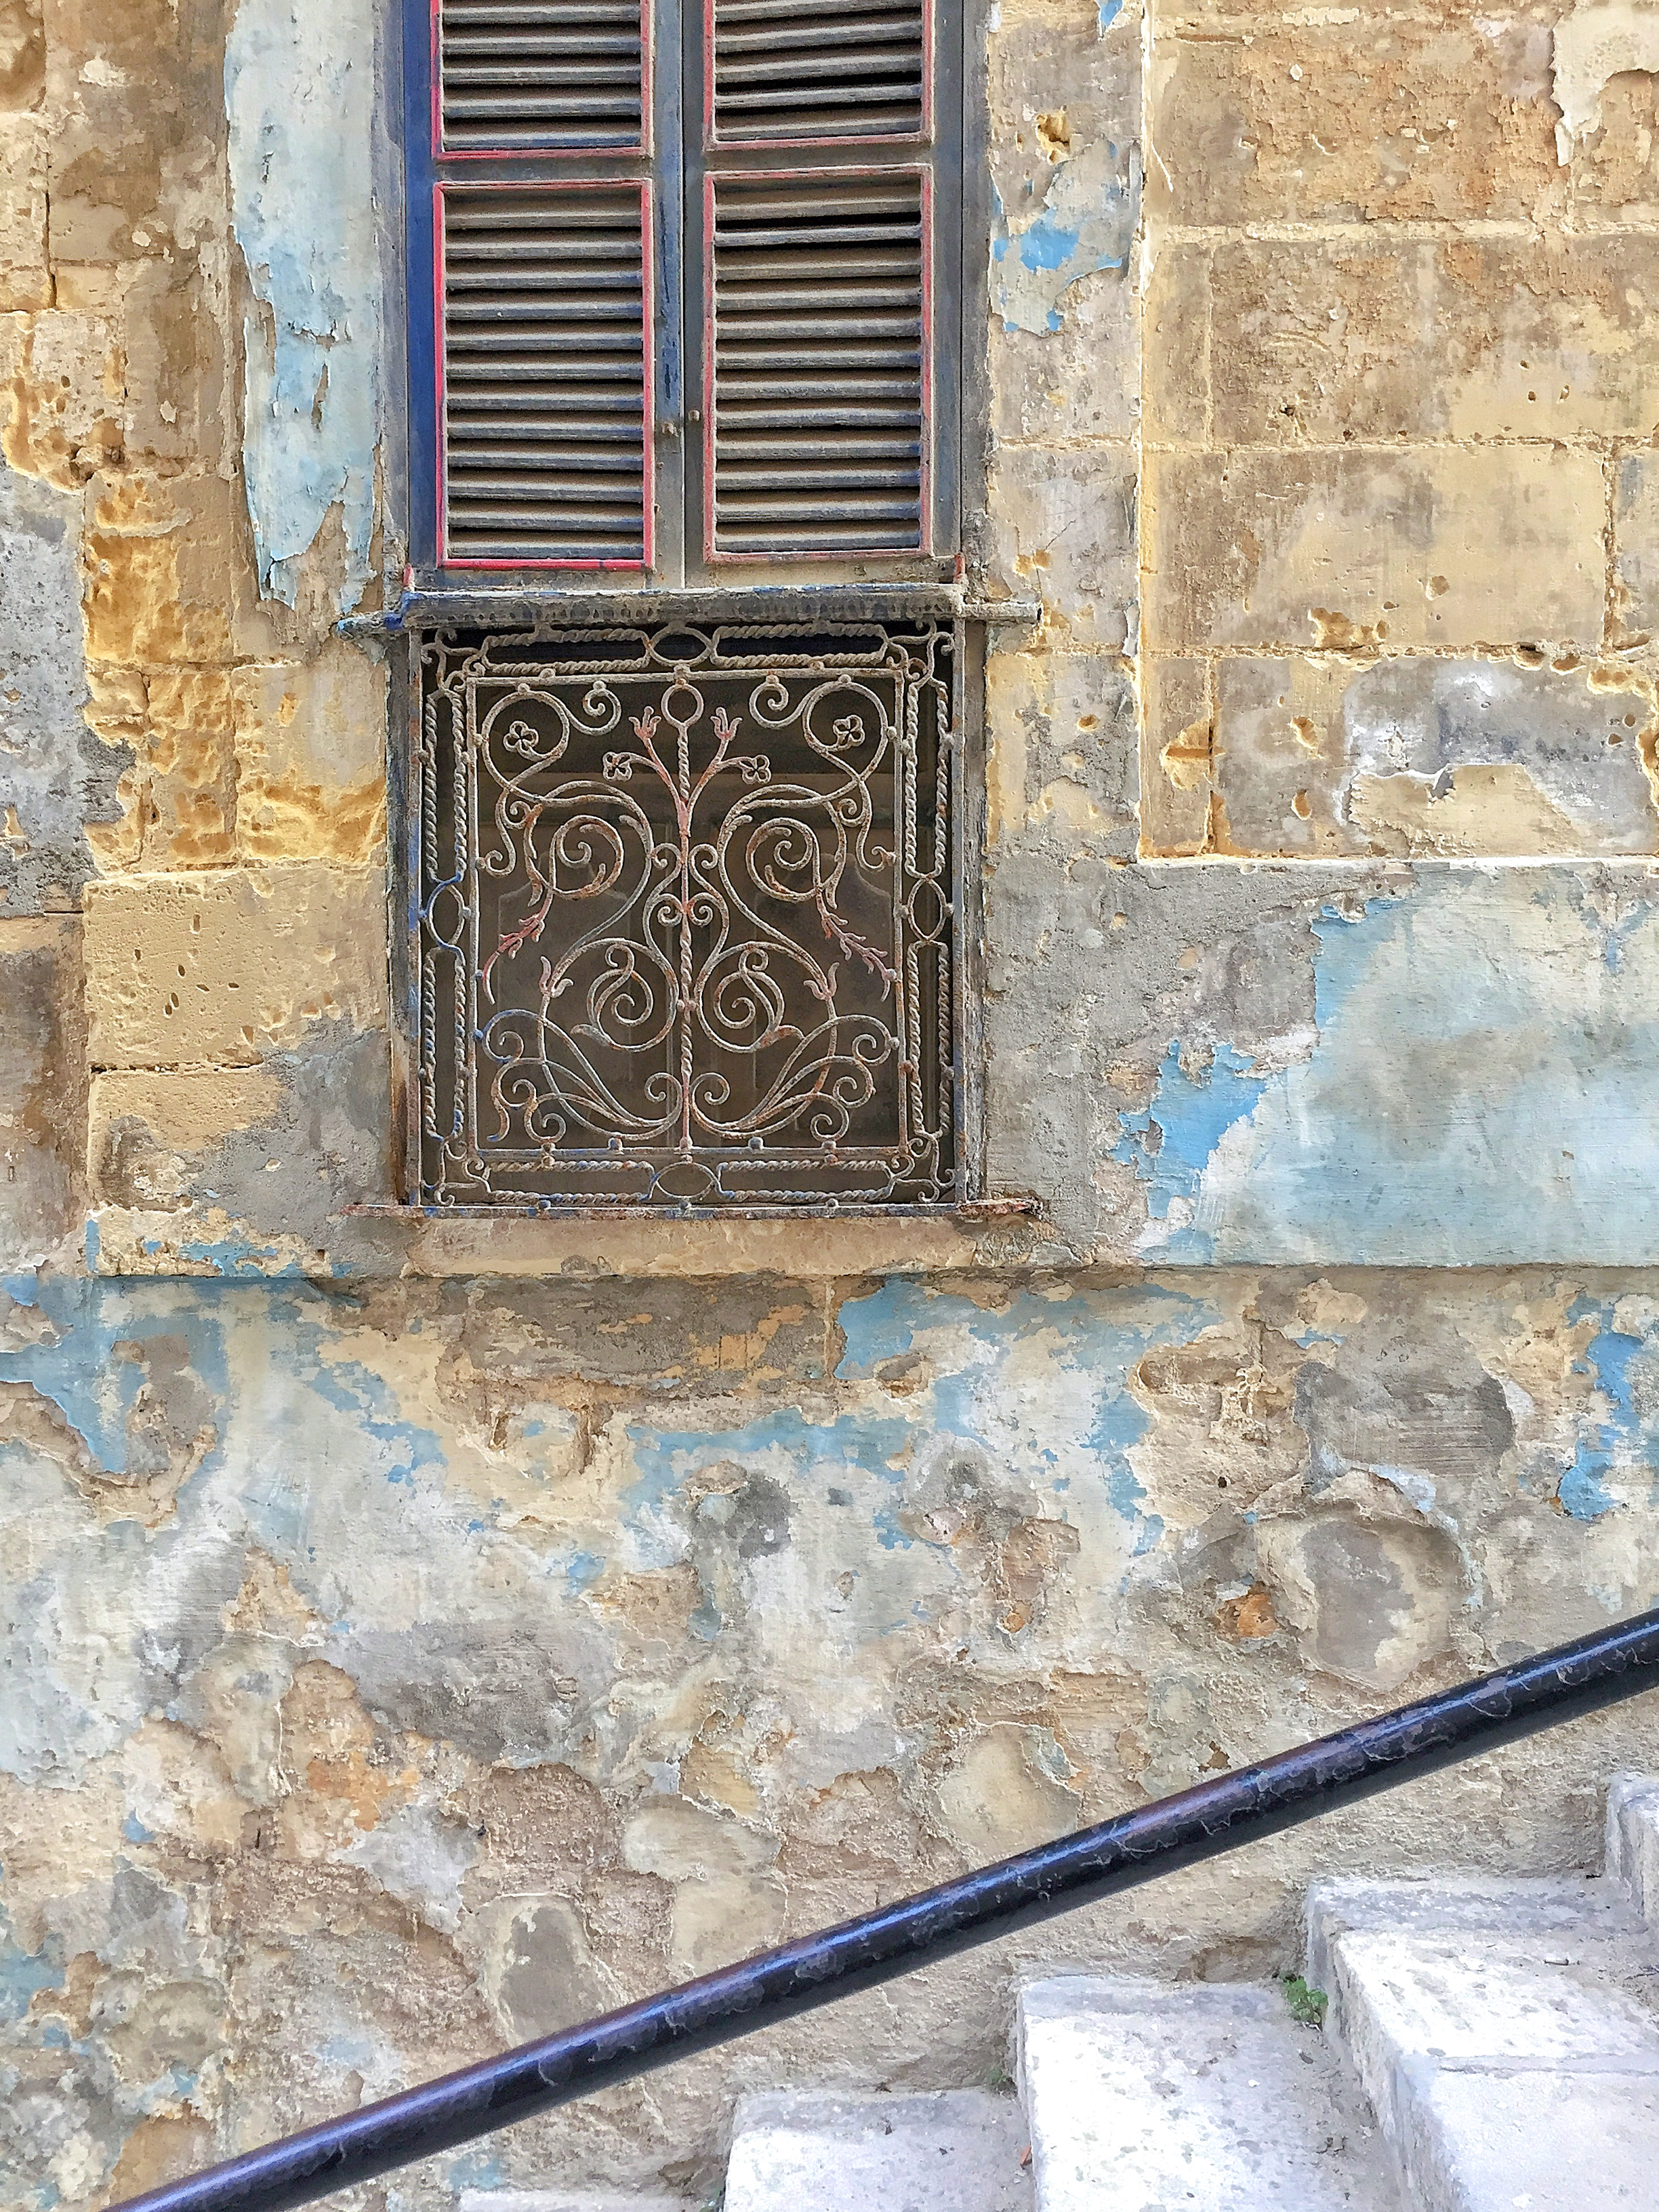 Maltese window | Senglea | - Thinking About Appreciation For Quality In Malta | Malta, Europe | DoLessGetMoreDone.com | - Travel Documentary Photography - search for Liveability | Sustainability